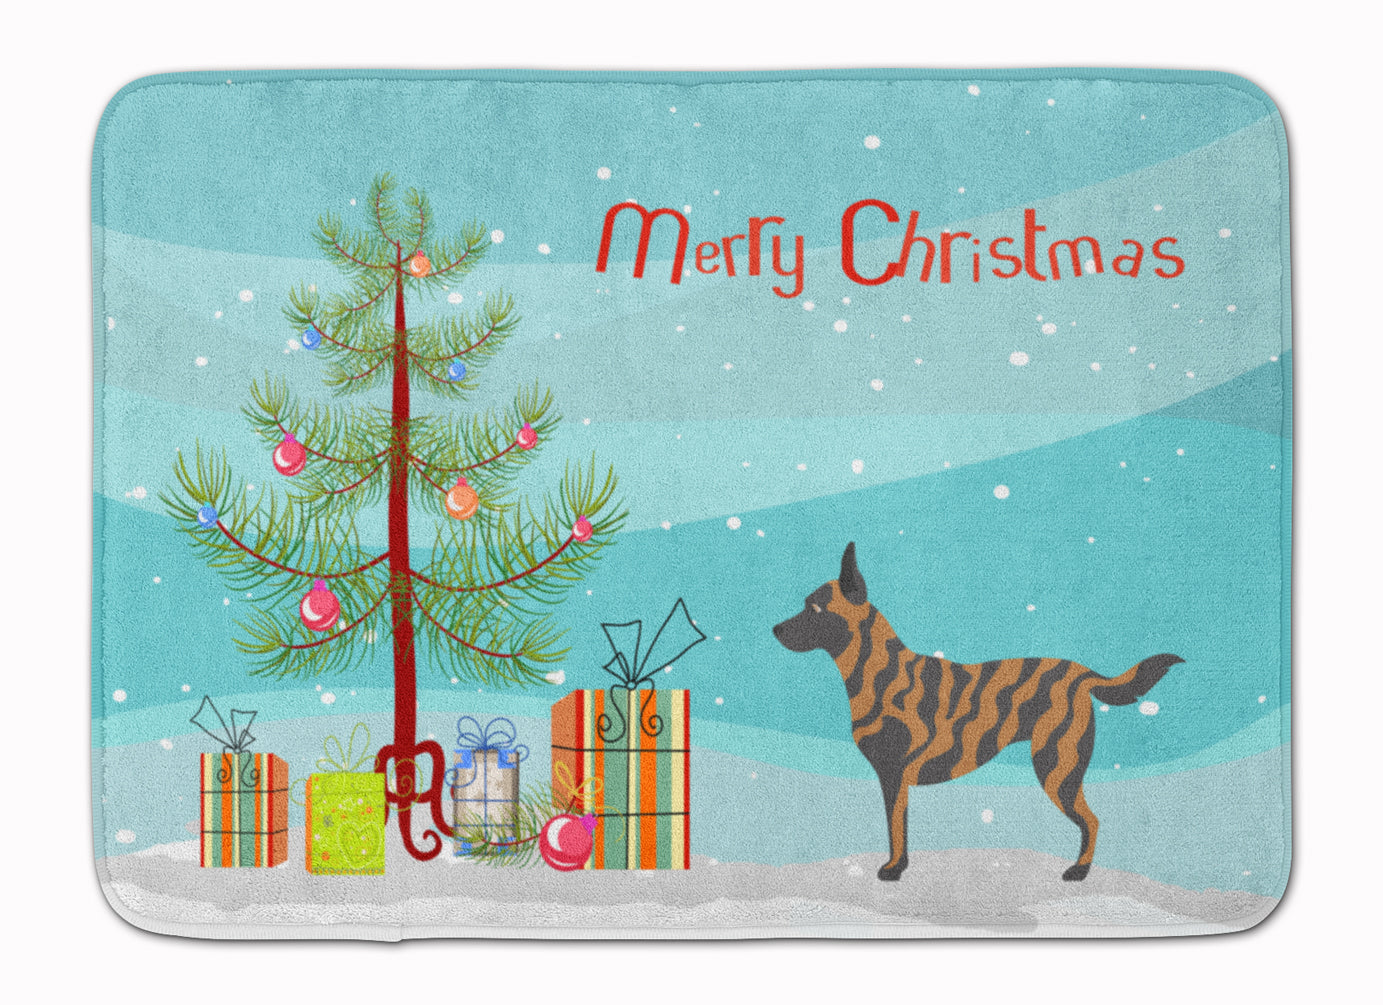 Dutch Shepherd Christmas Machine Washable Memory Foam Mat BB8462RUG by Caroline's Treasures